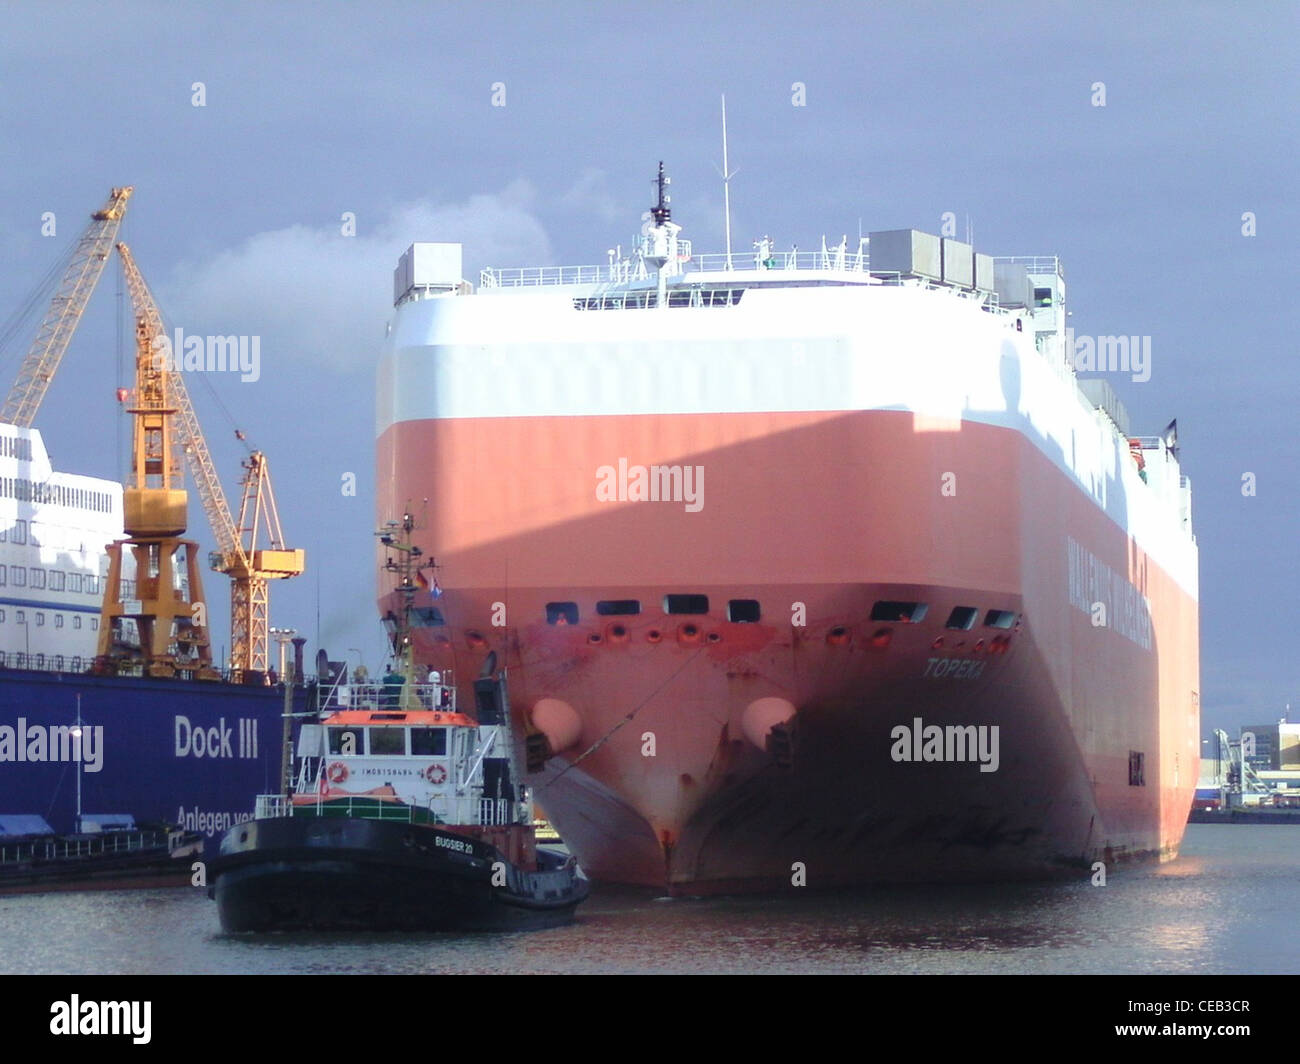 The car carrier Topeka is moving in the port of Bremerhaven. In front of the car carrier is the tugboat Bugsier - Stock Image